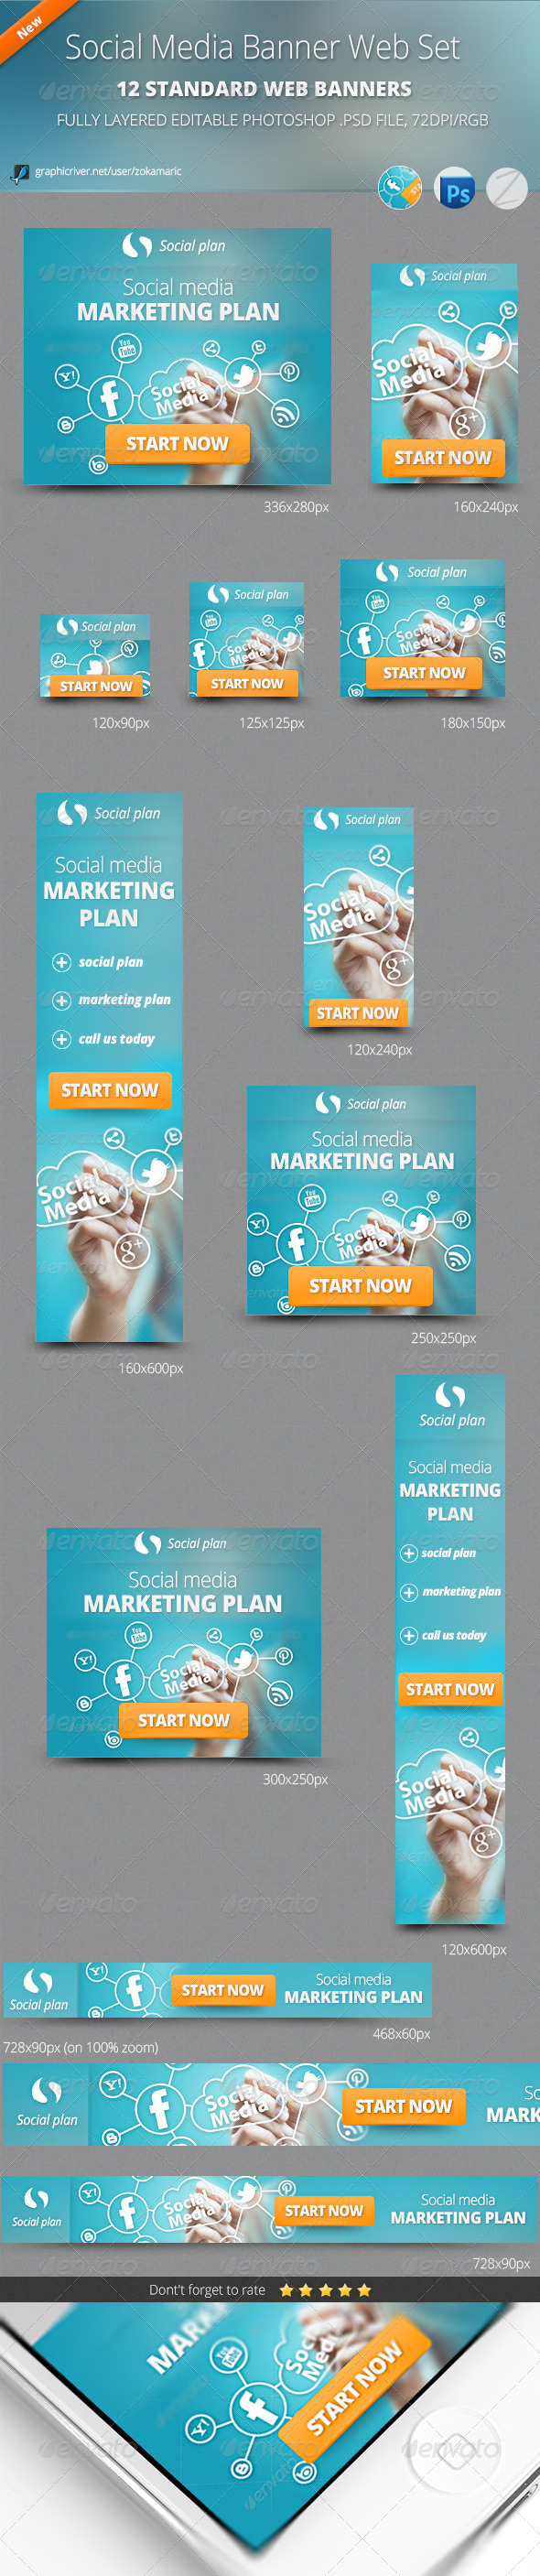 Social Media Banner Web Set - Banners & Ads Web Elements